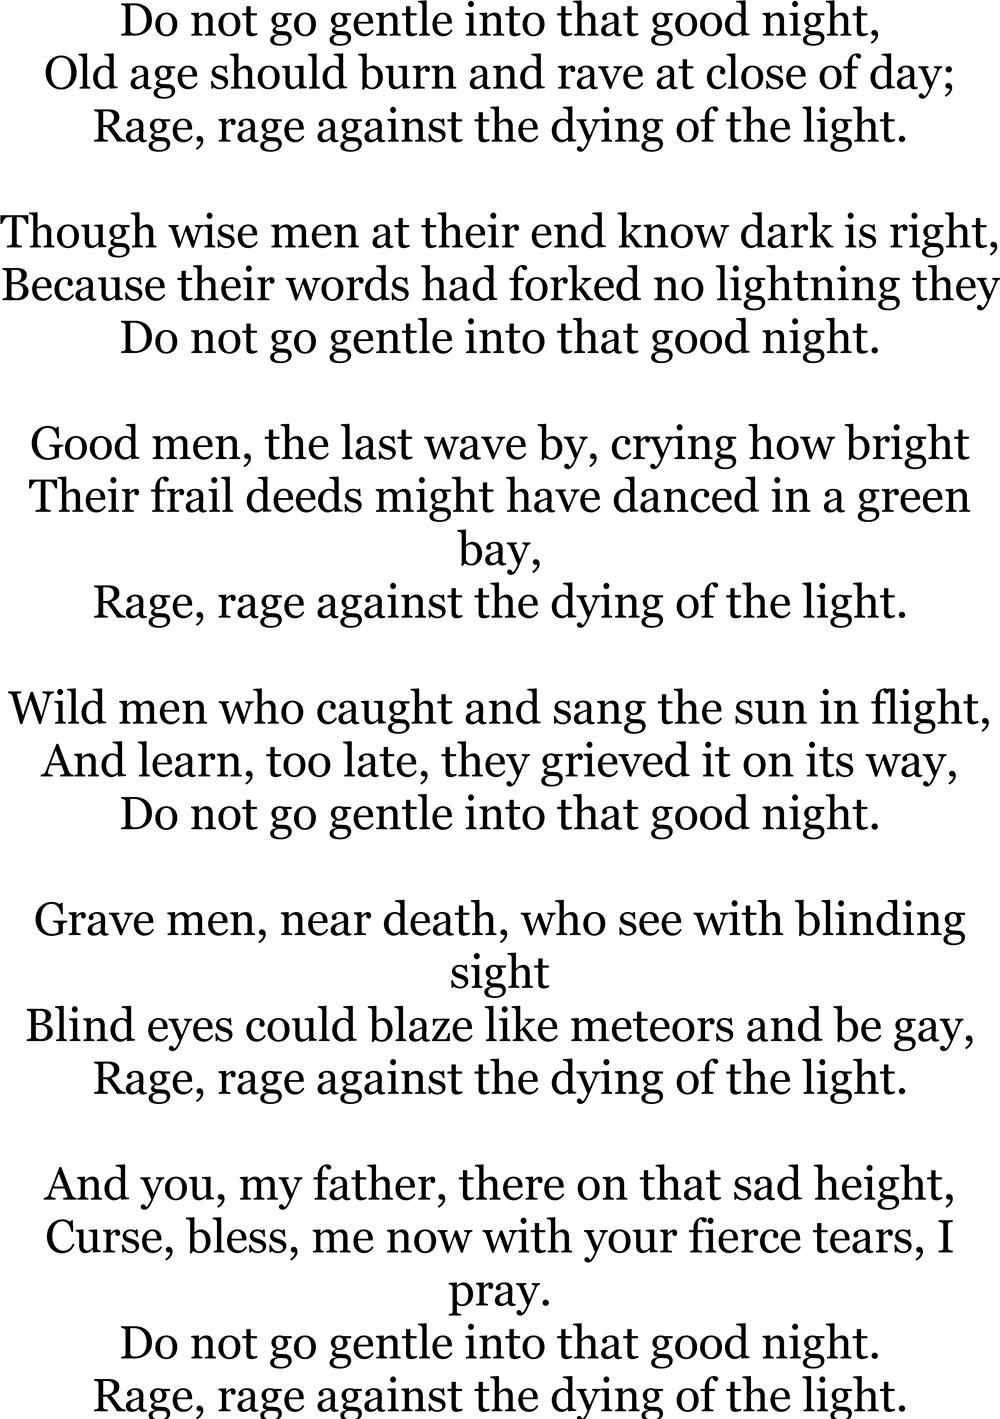 Do Not Go Gentle Into That Good Night By Dylan Thomas From One Of